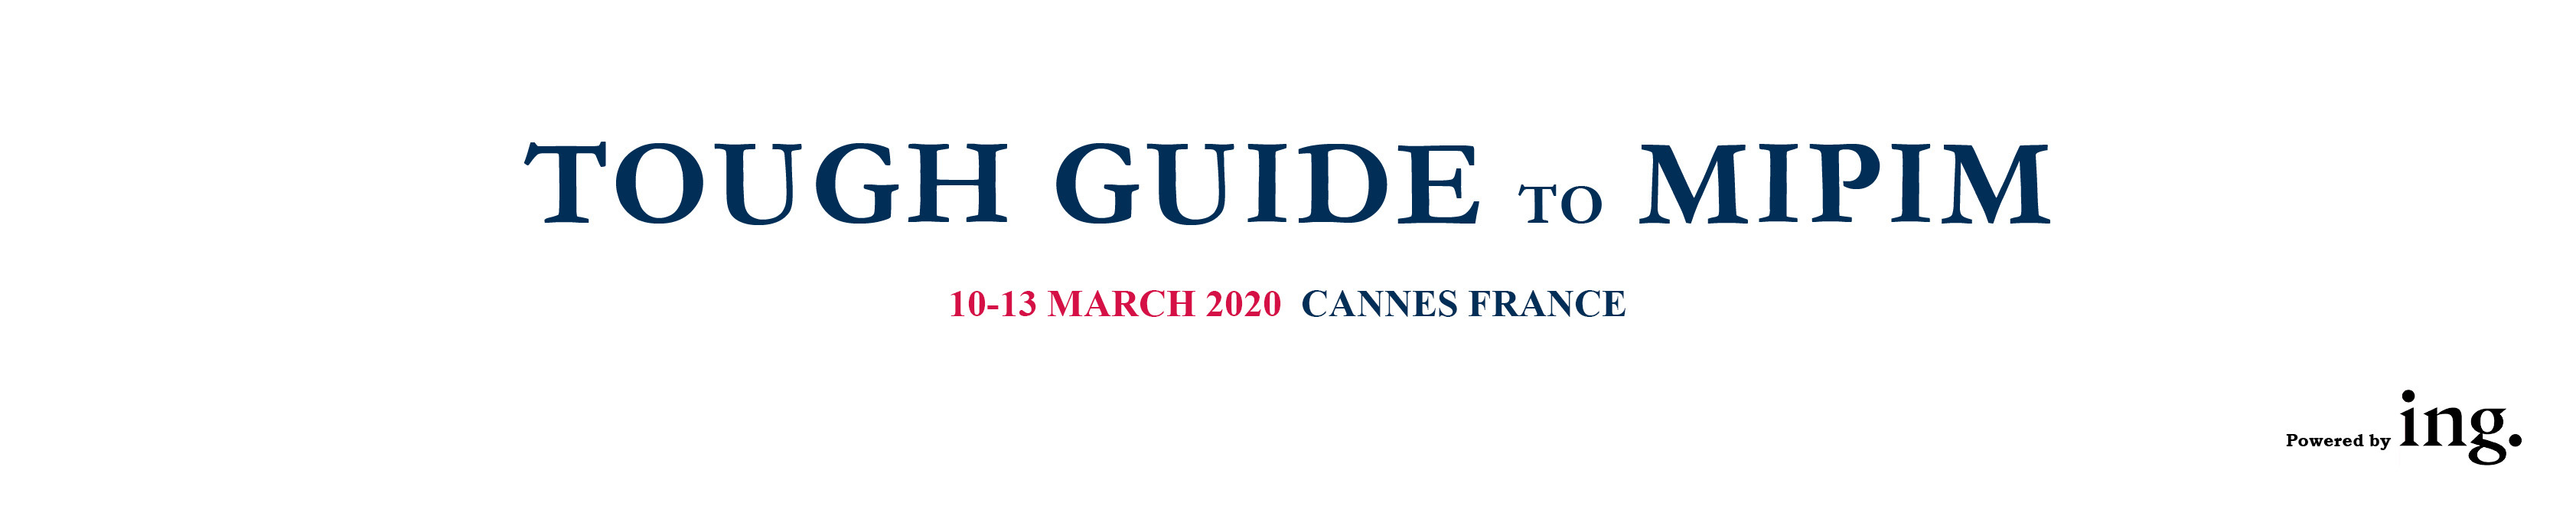 MIPIM TOUGH GUIDE 2020